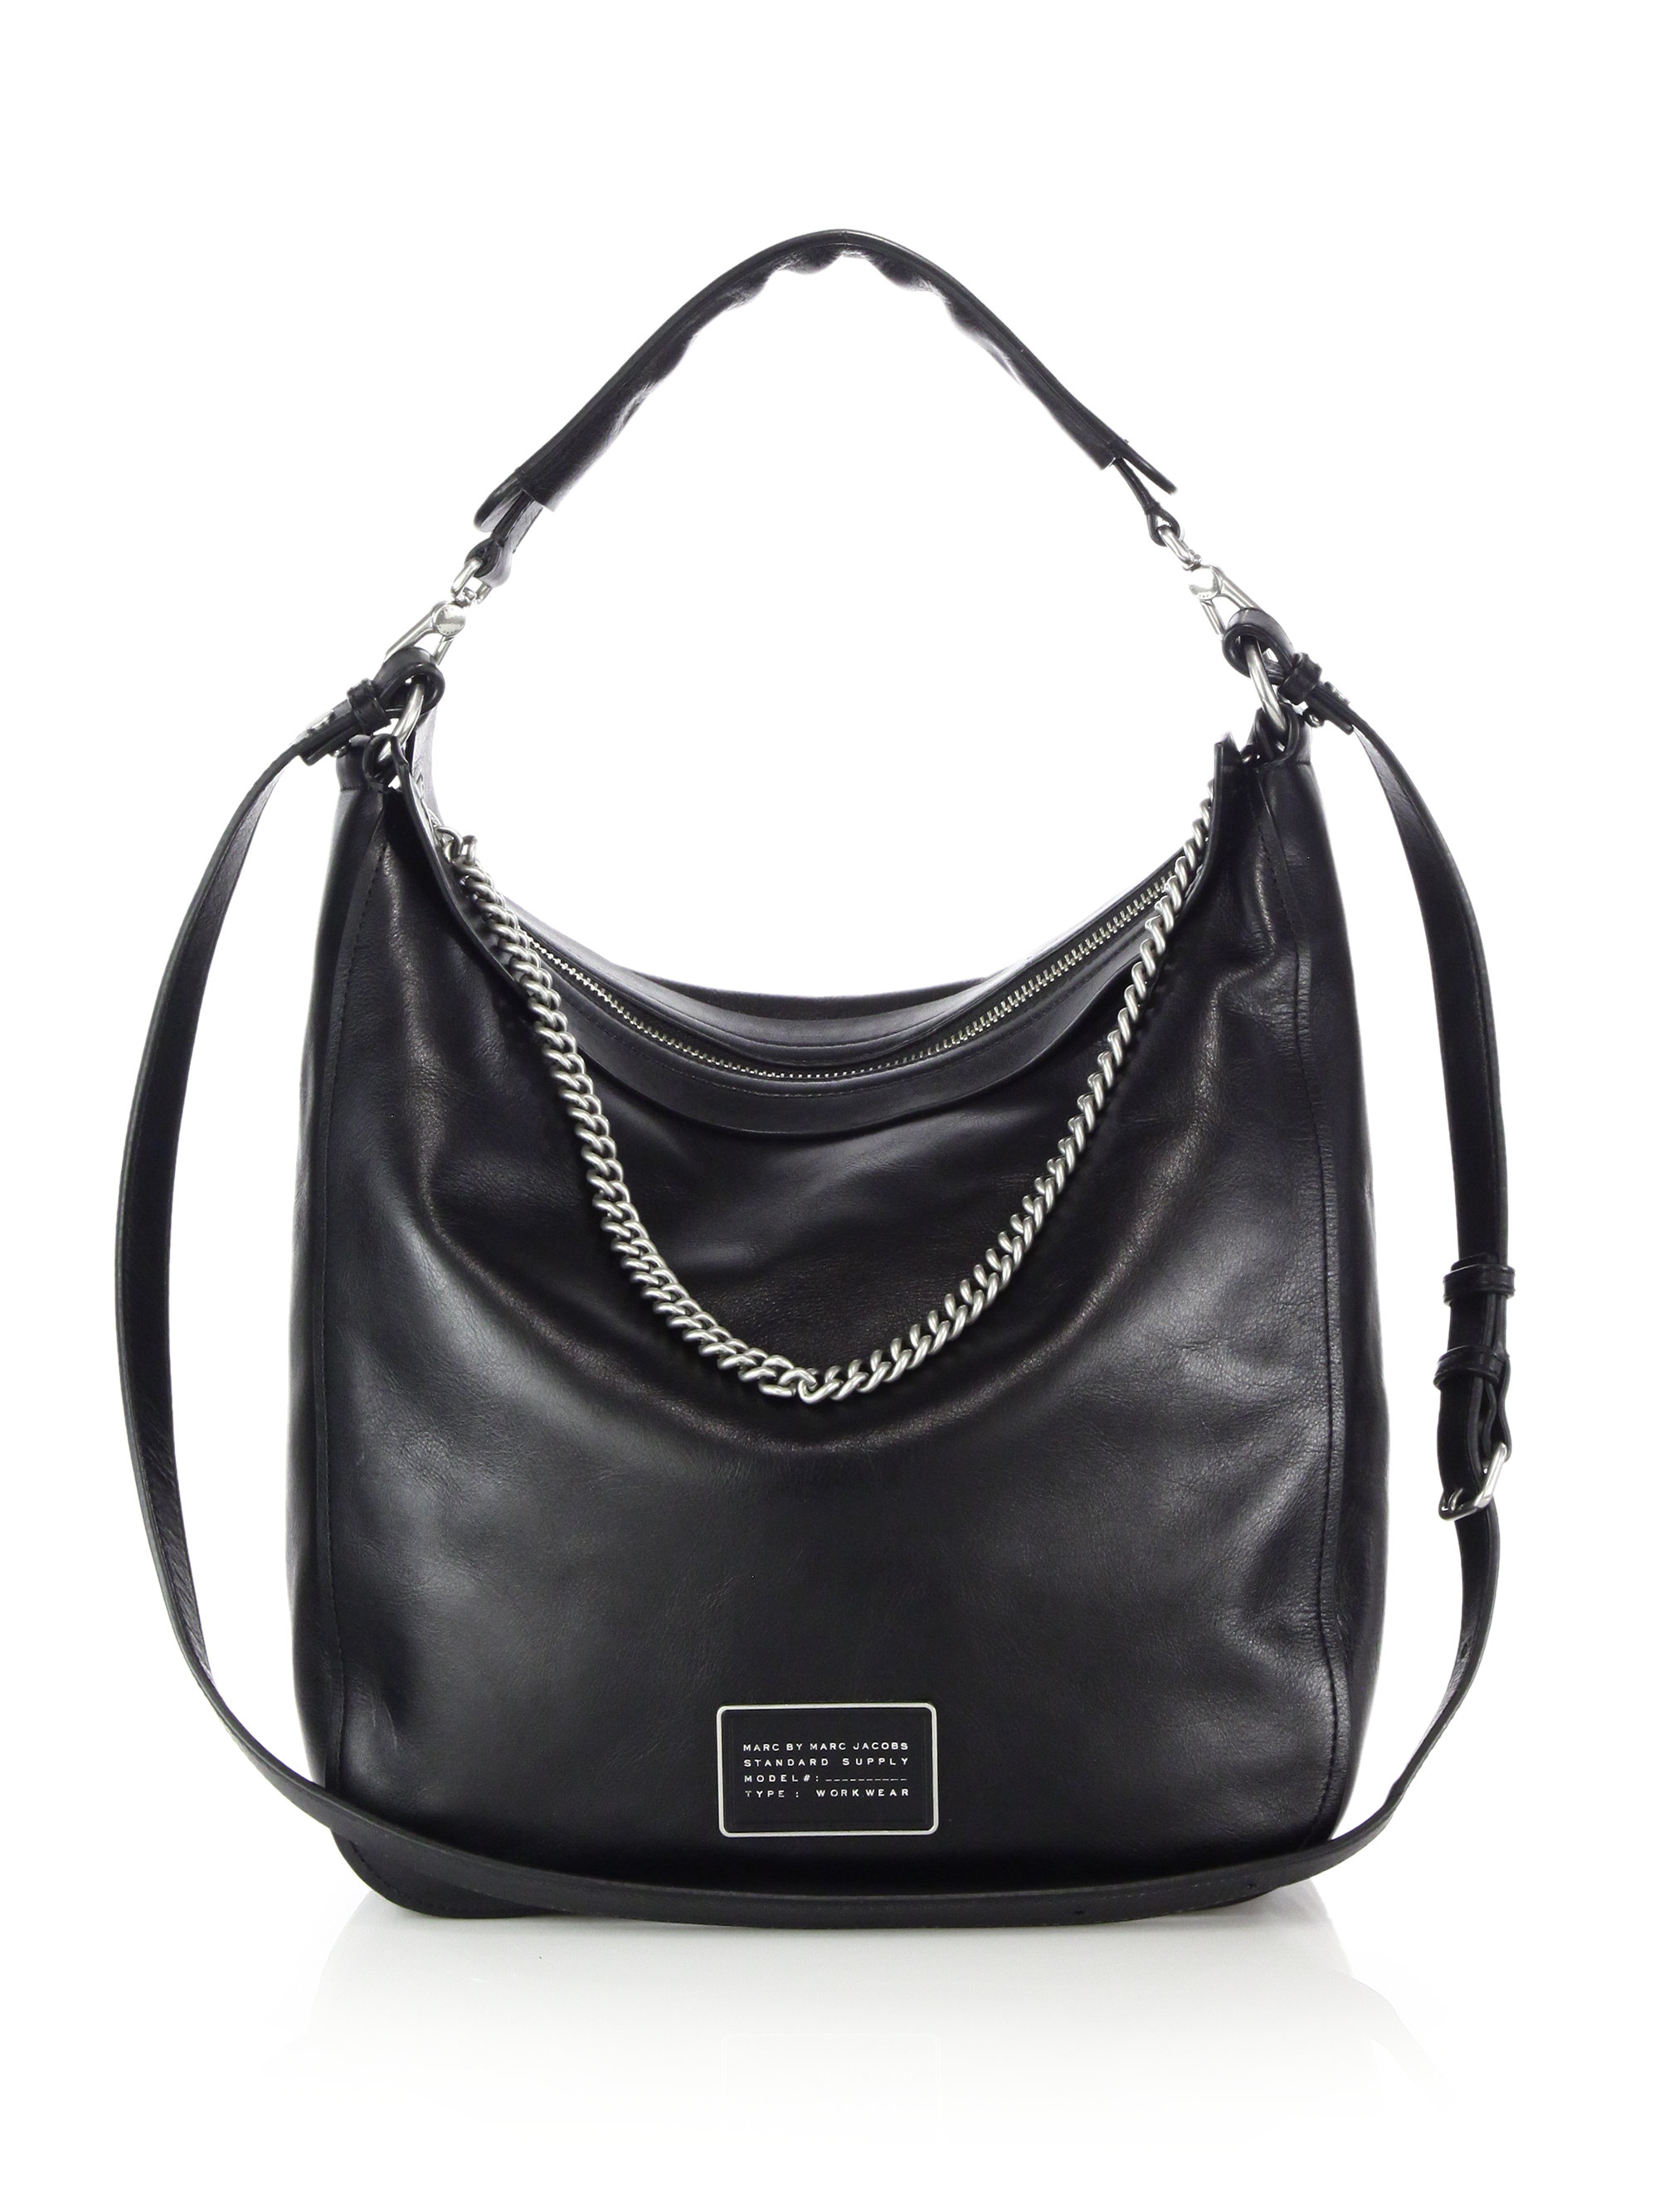 Marc by marc jacobs Top Of The Chain Leather Hobo Bag in Black | Lyst